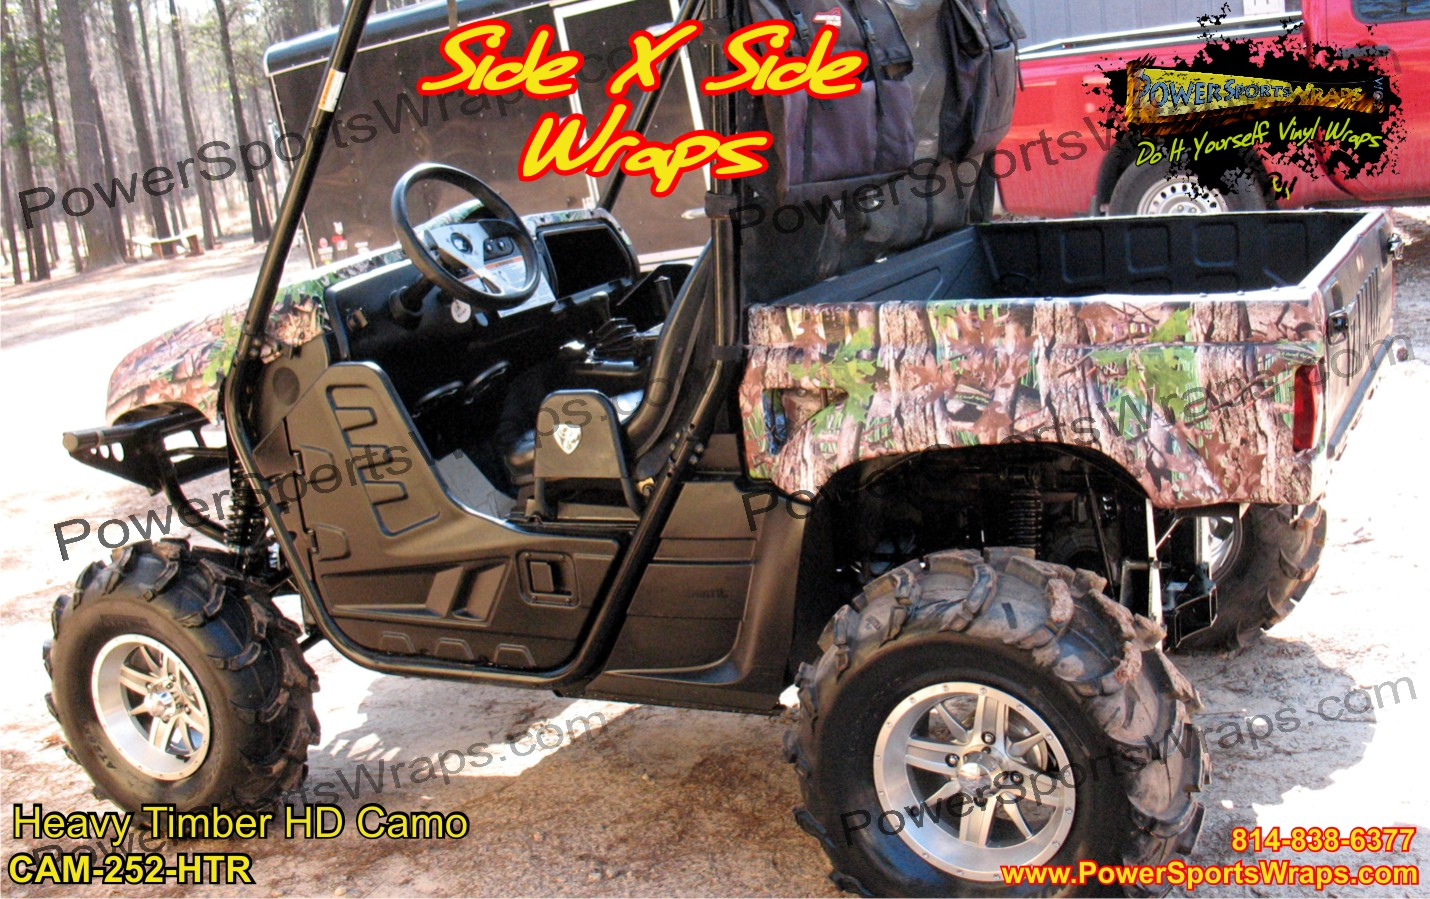 utv camo vinyl, camo covering, camouflage, tree camo, camo decals, camo graphics, hunting camo 814-838-6377